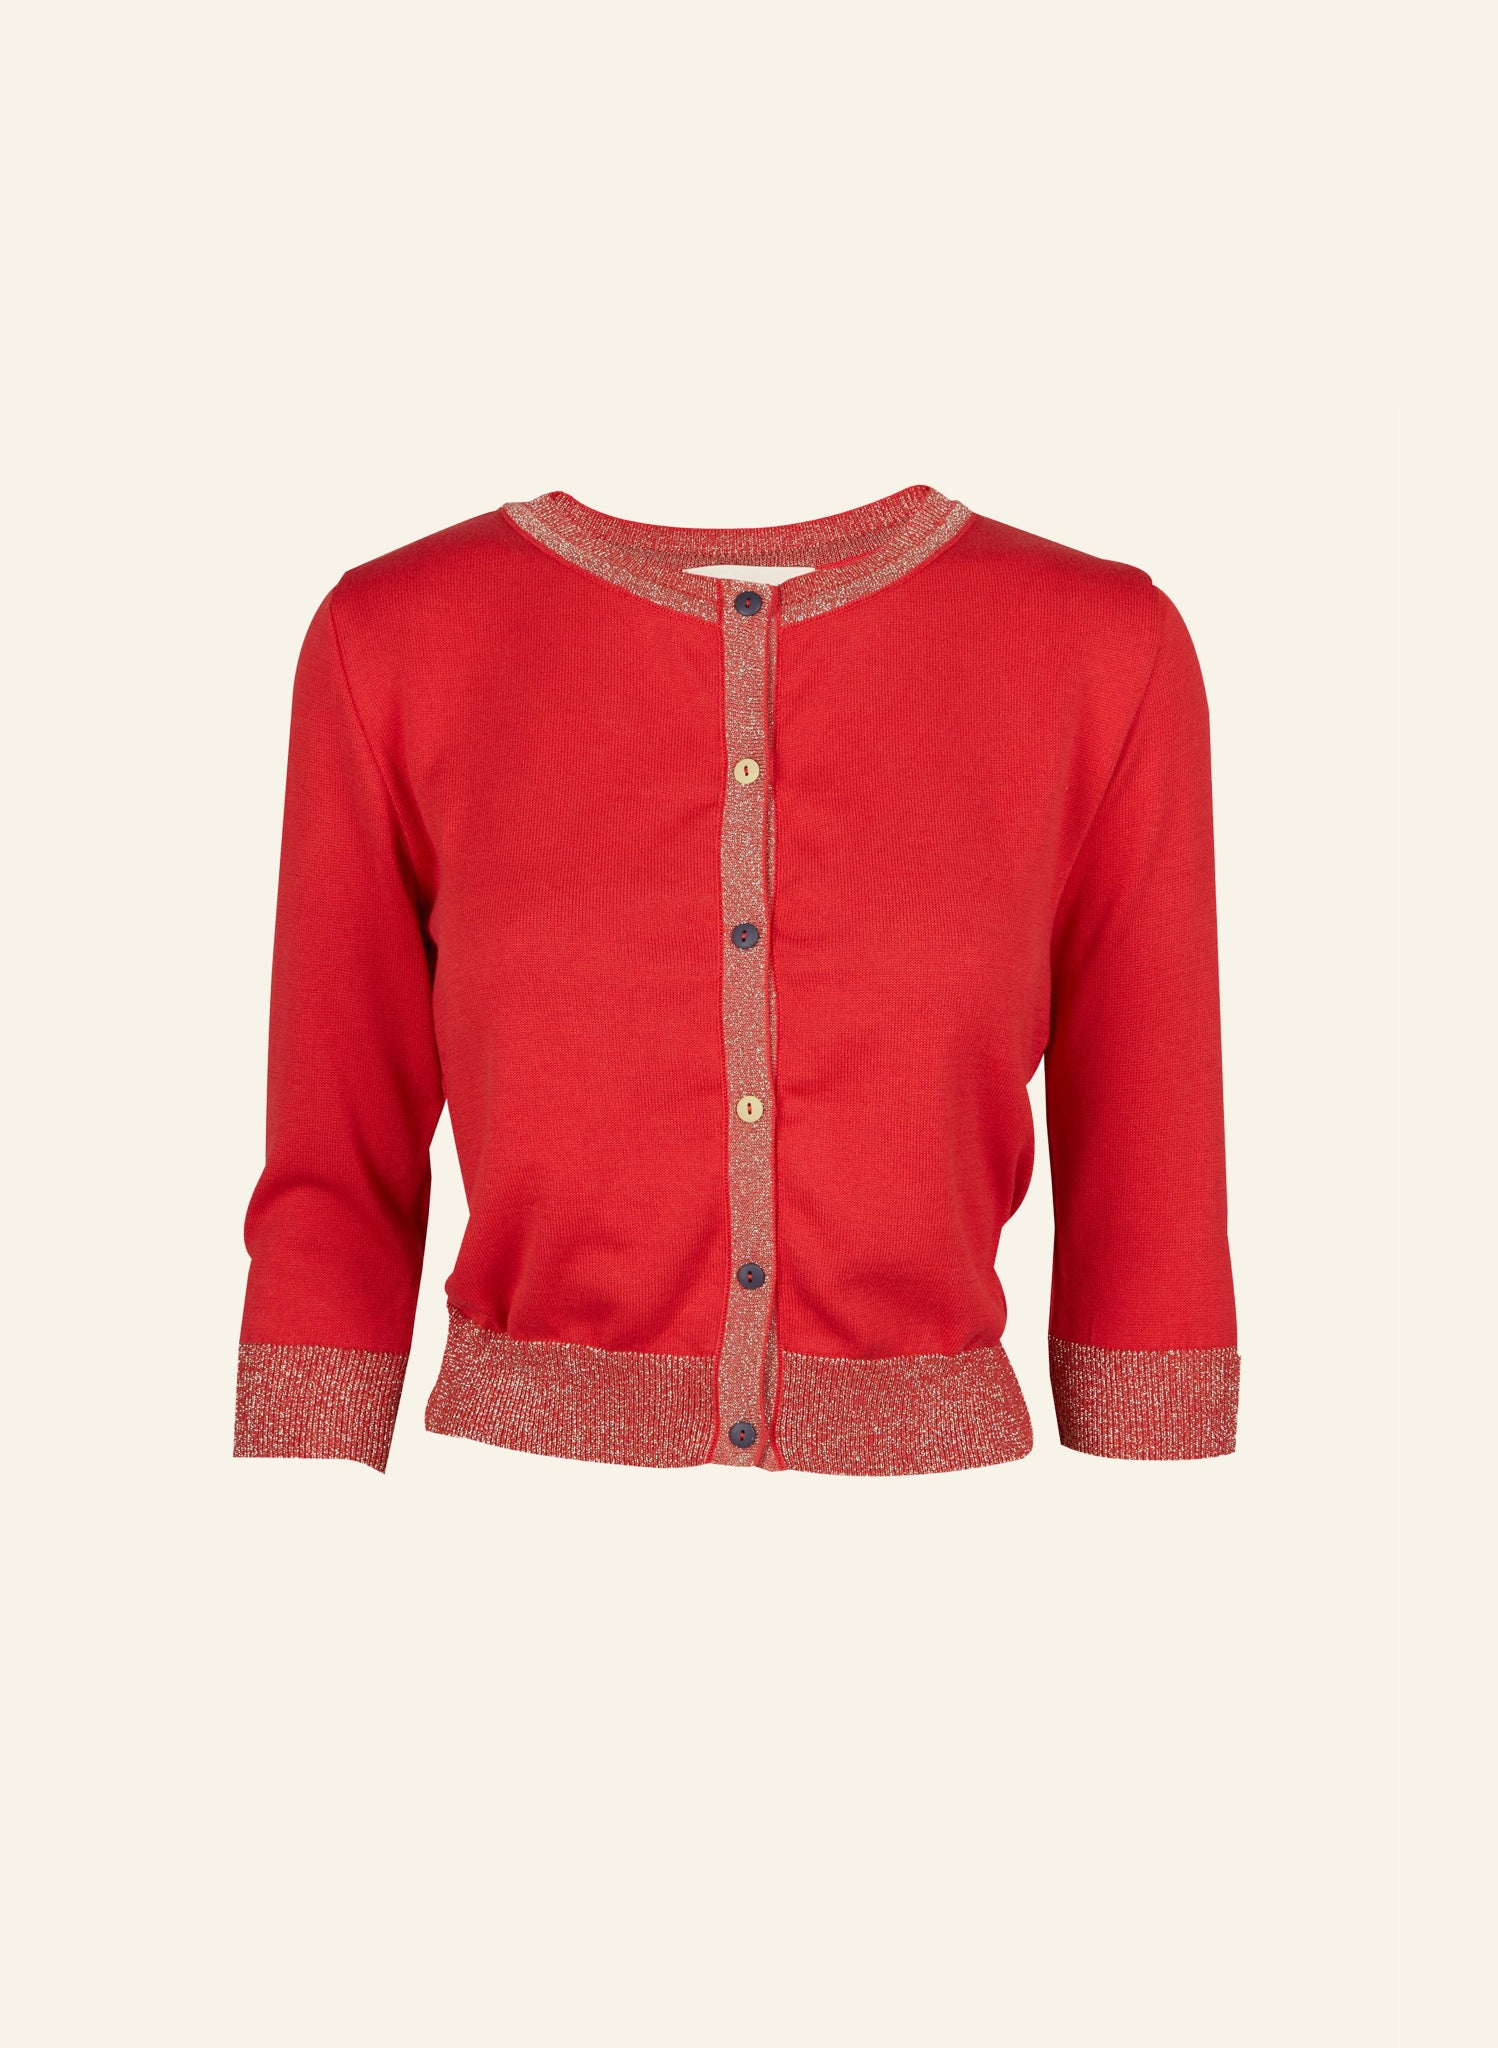 Vera - Red Sparkly - Organic Cotton Cardigan